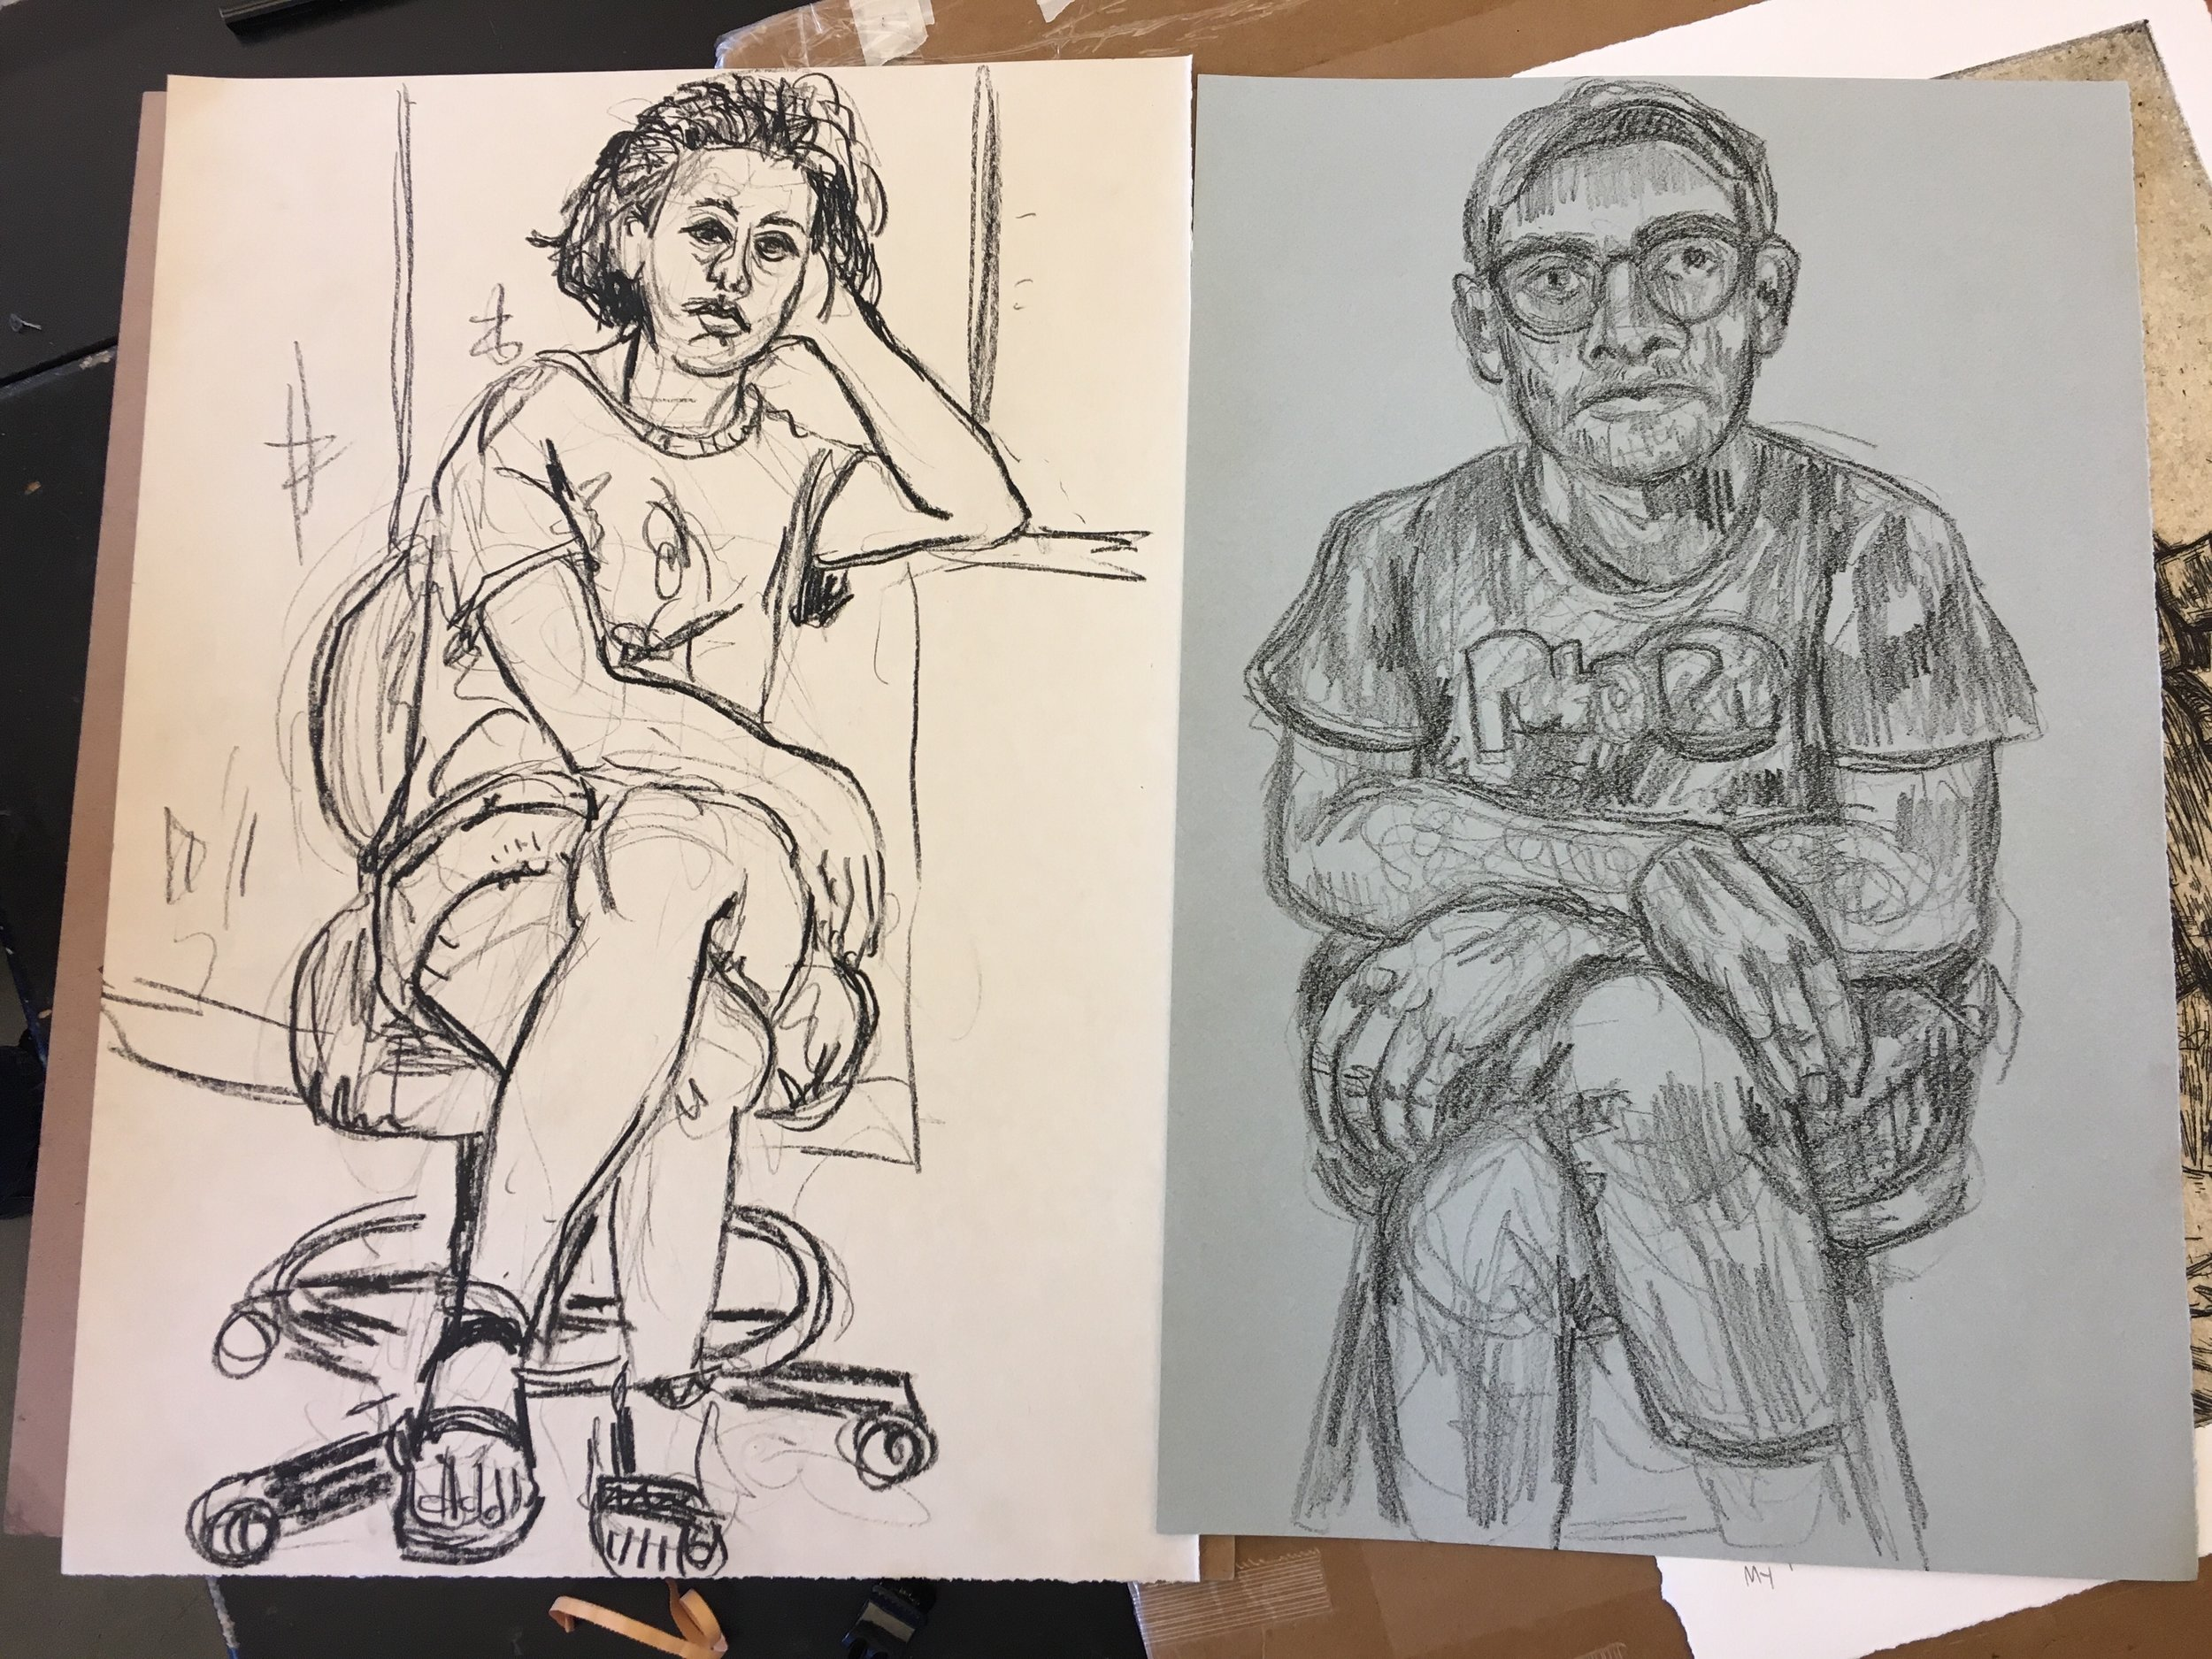 Trading portraits before leaving (drawing on left by Teddy Lepley) / Muncie IN